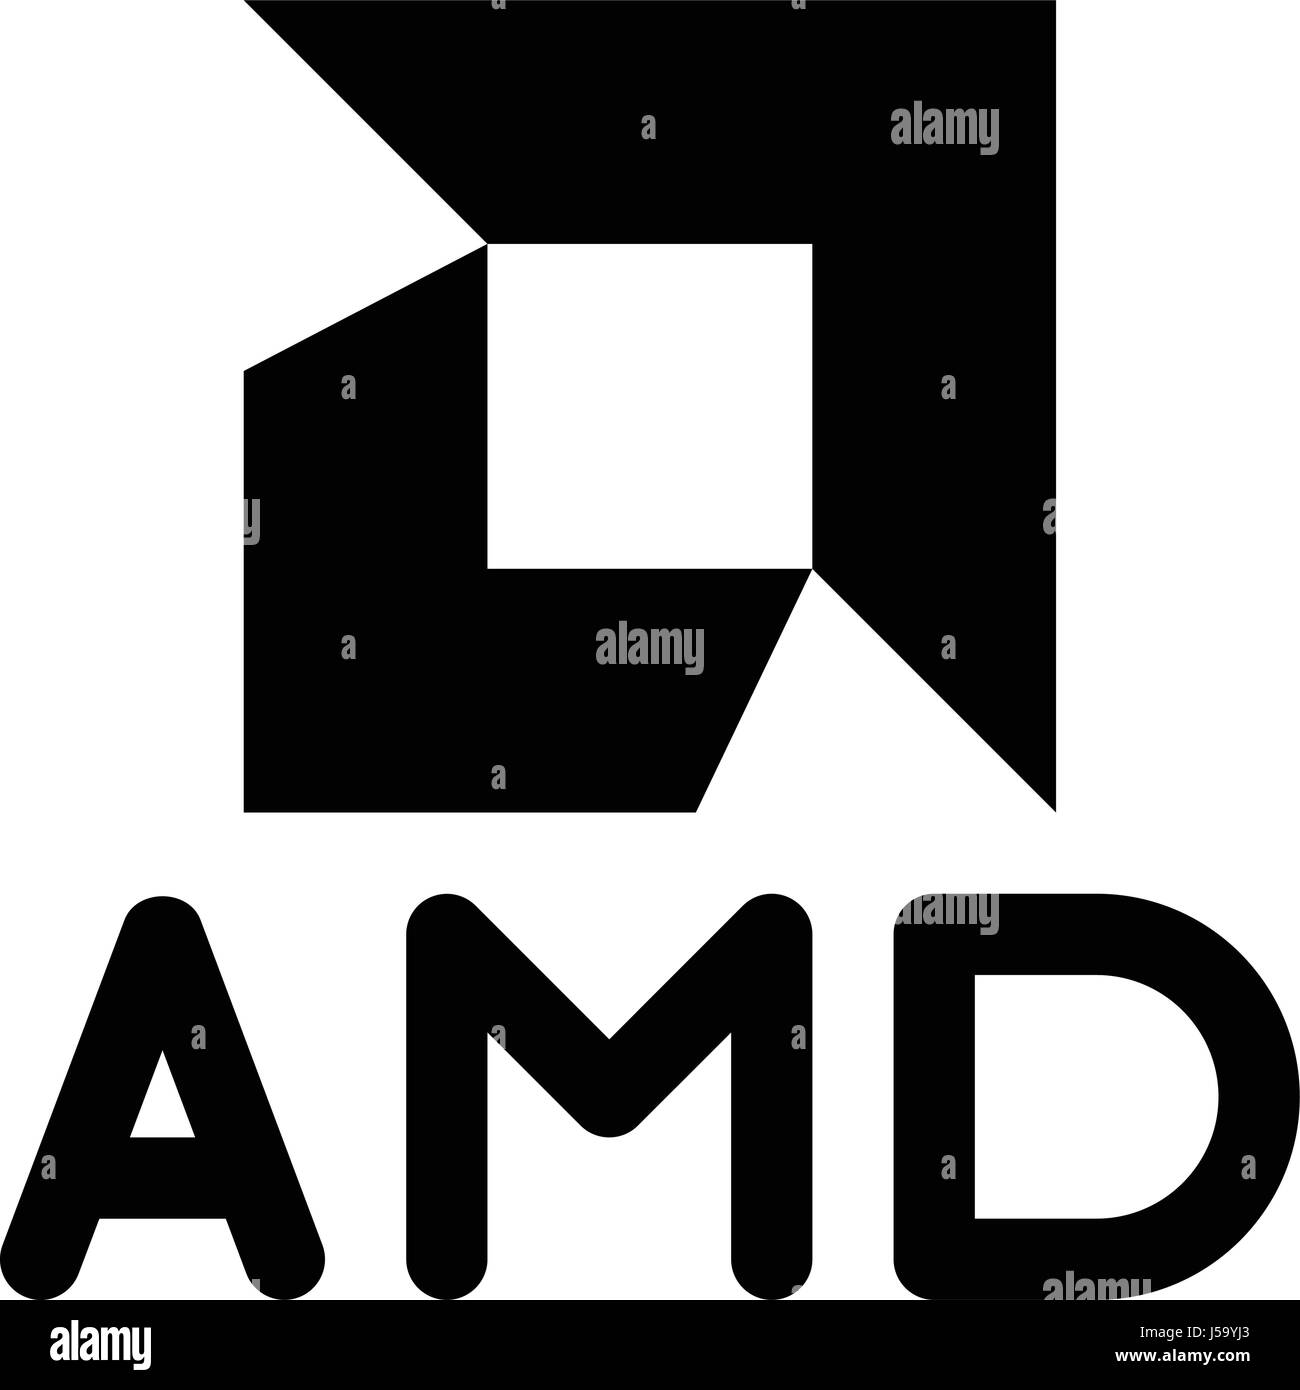 amd - Stock Vector